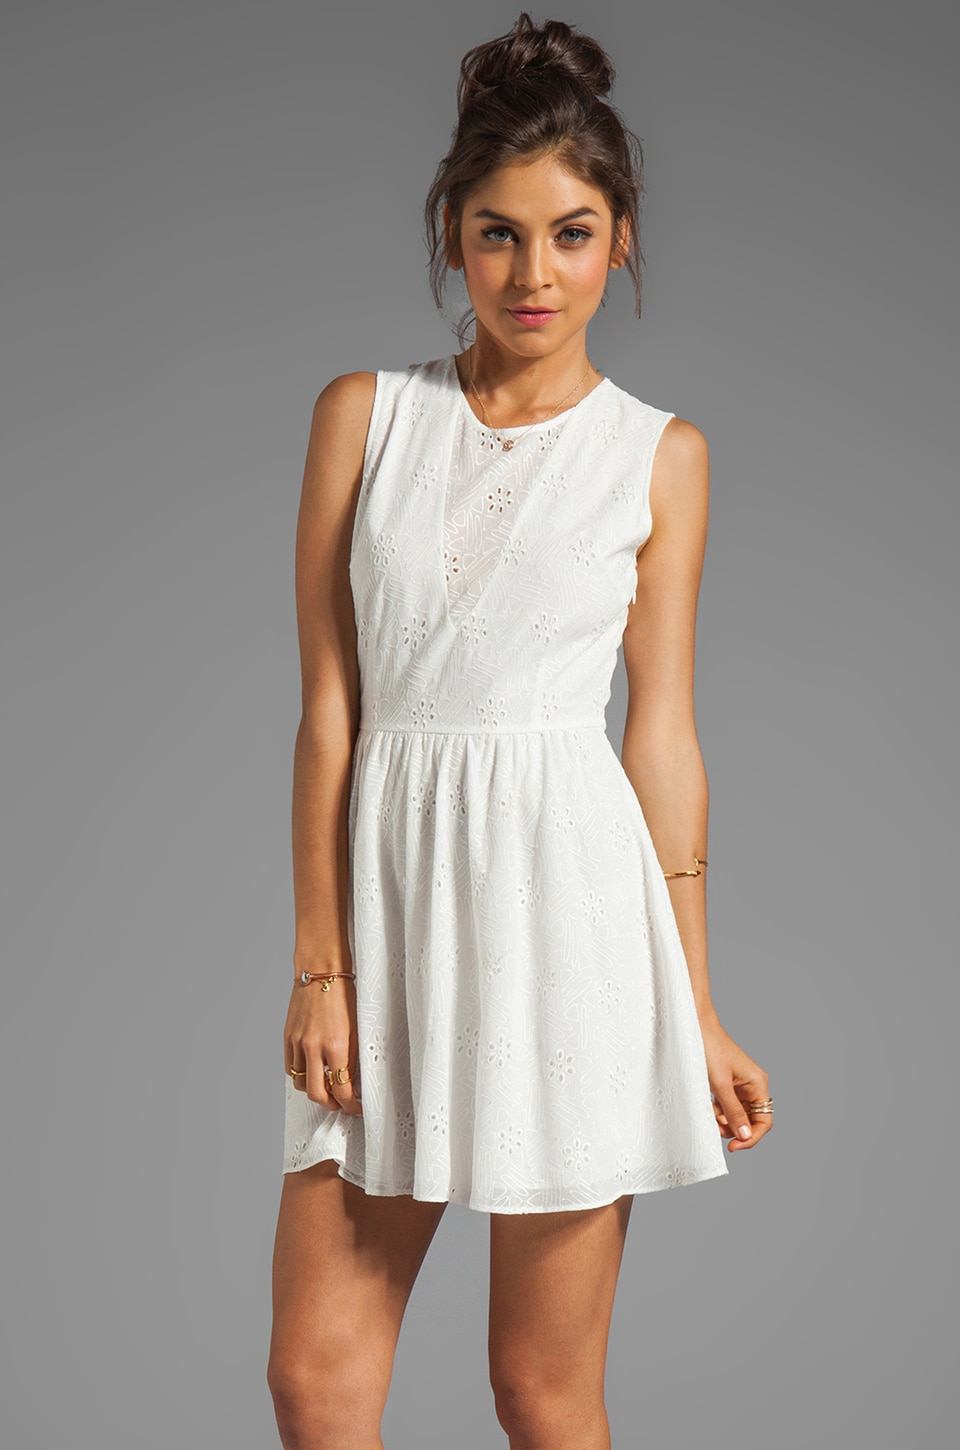 Dolce Vita Delyth Eyelet Embroidery Tank Dress in White